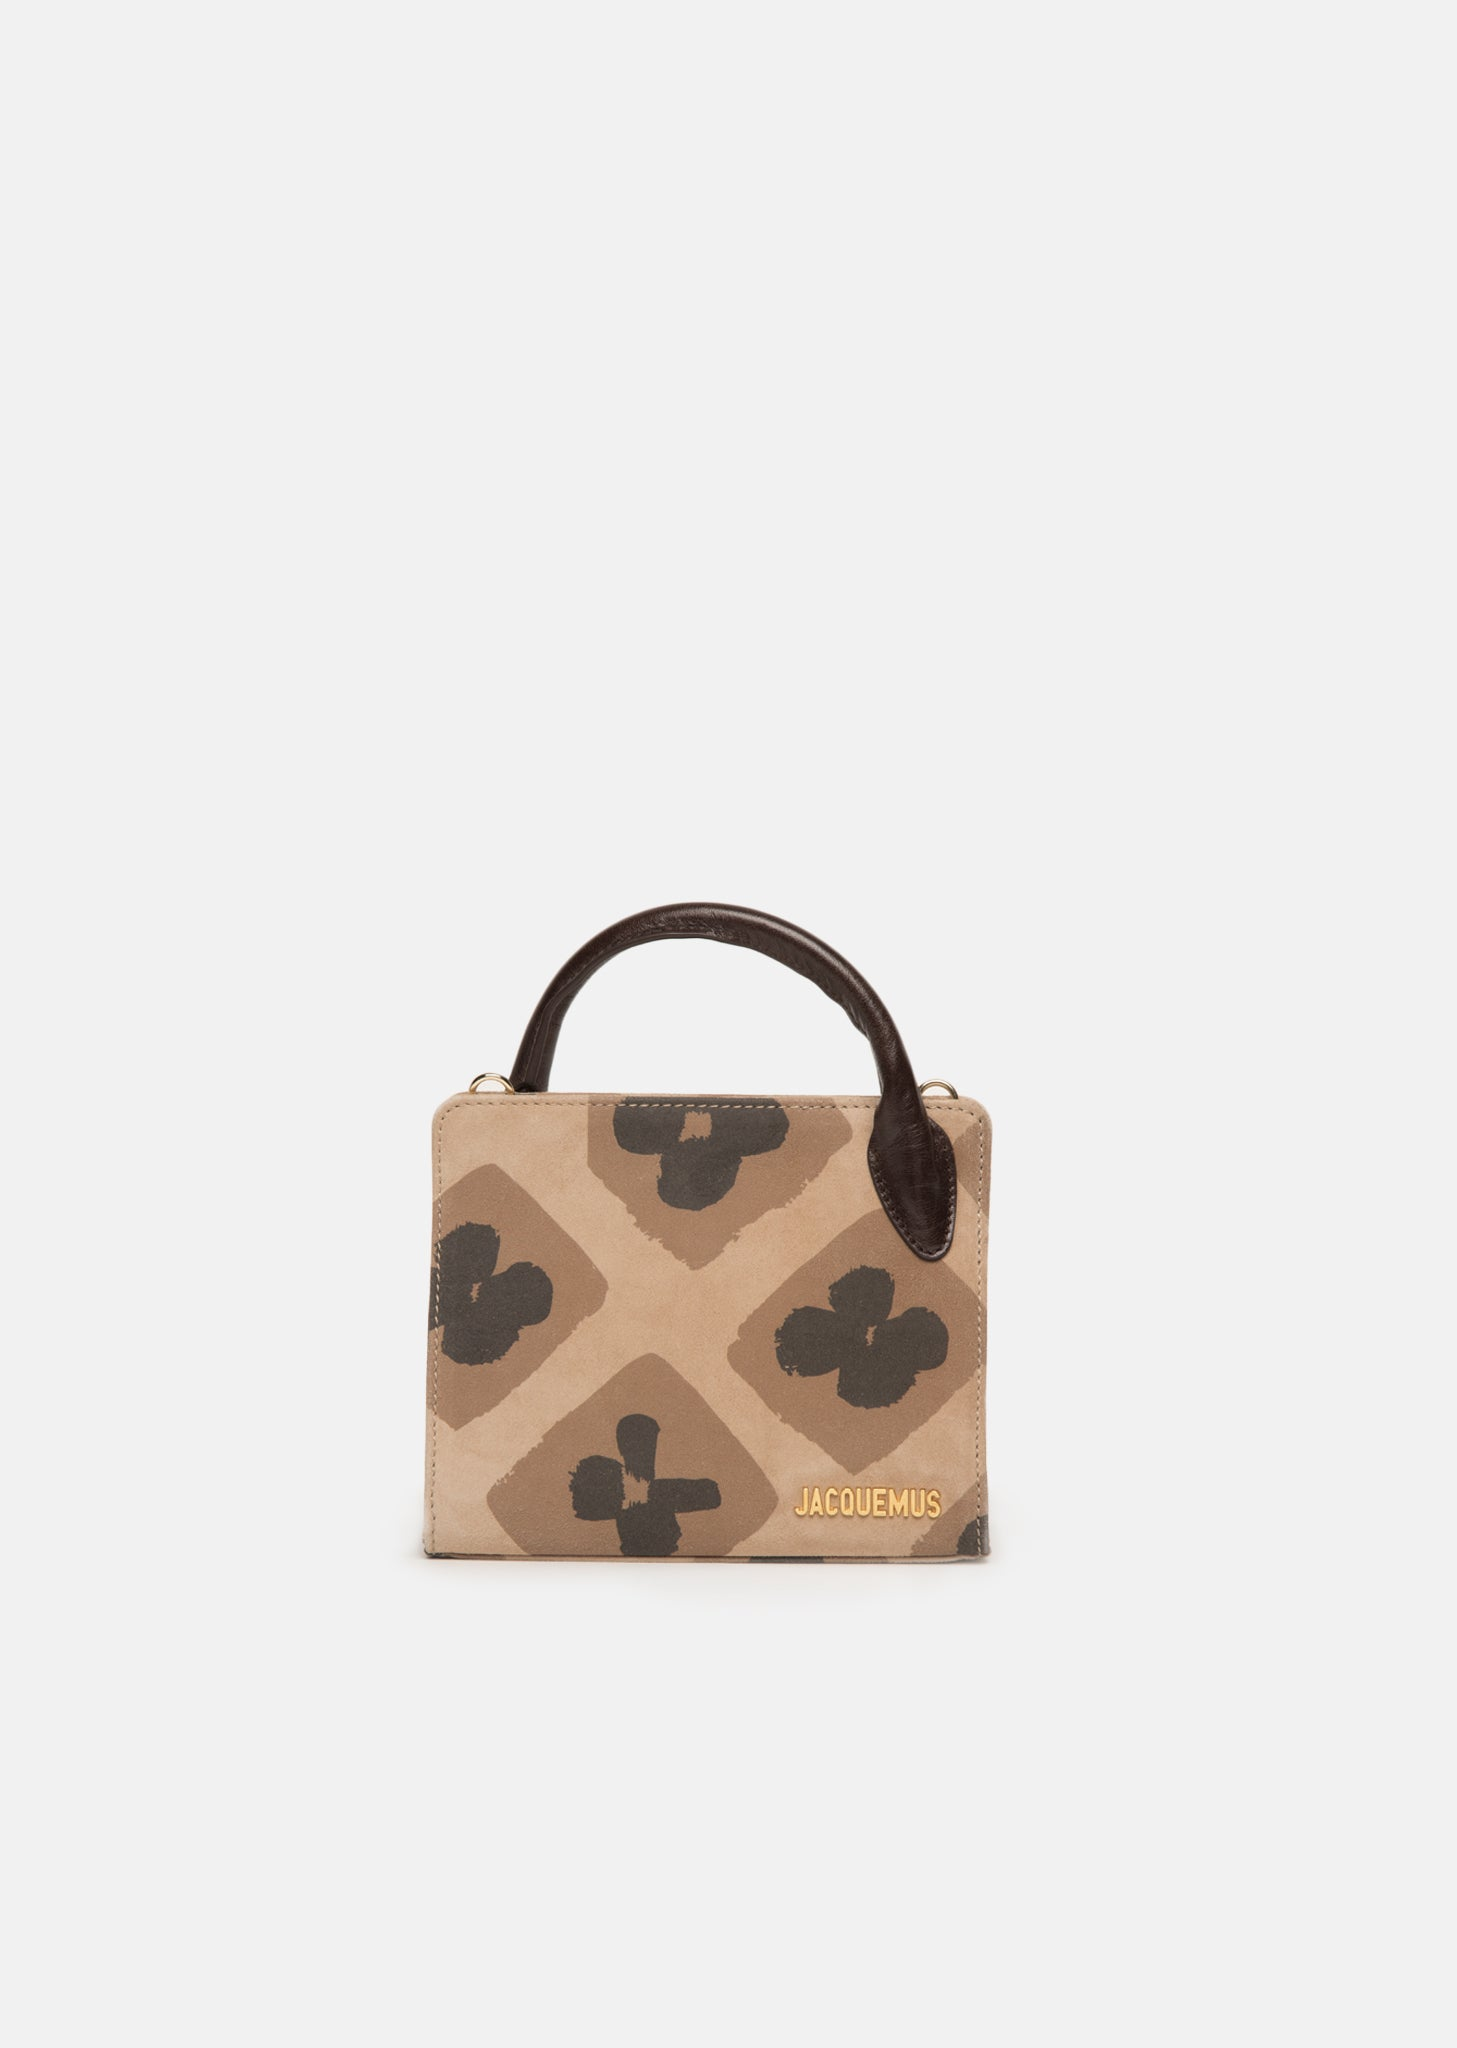 Bahia Bag in Printed Brown Suede Jacquemus Clearance Store Sale Online i0LdCK